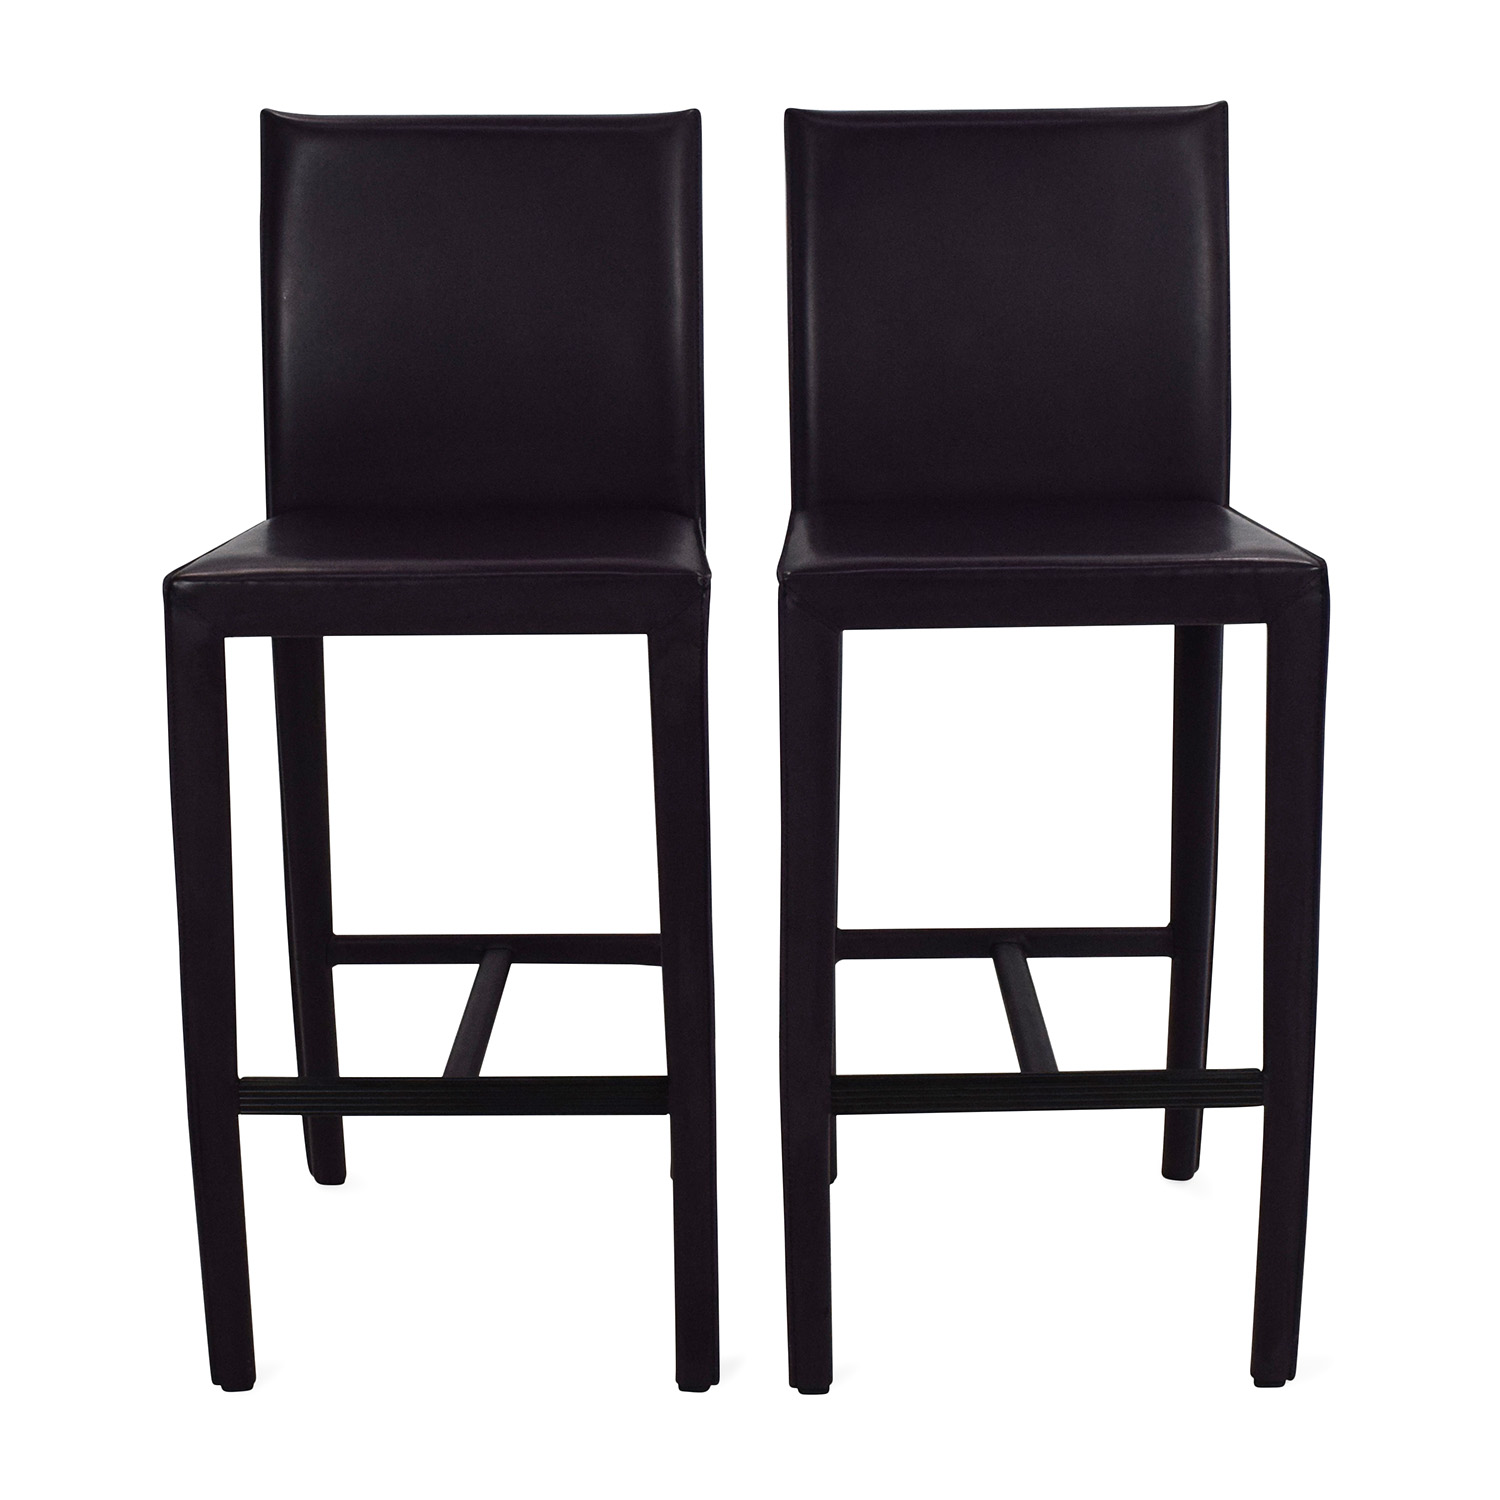 Crate and Barrel Crate & Barrel Folio Leather Barstools price